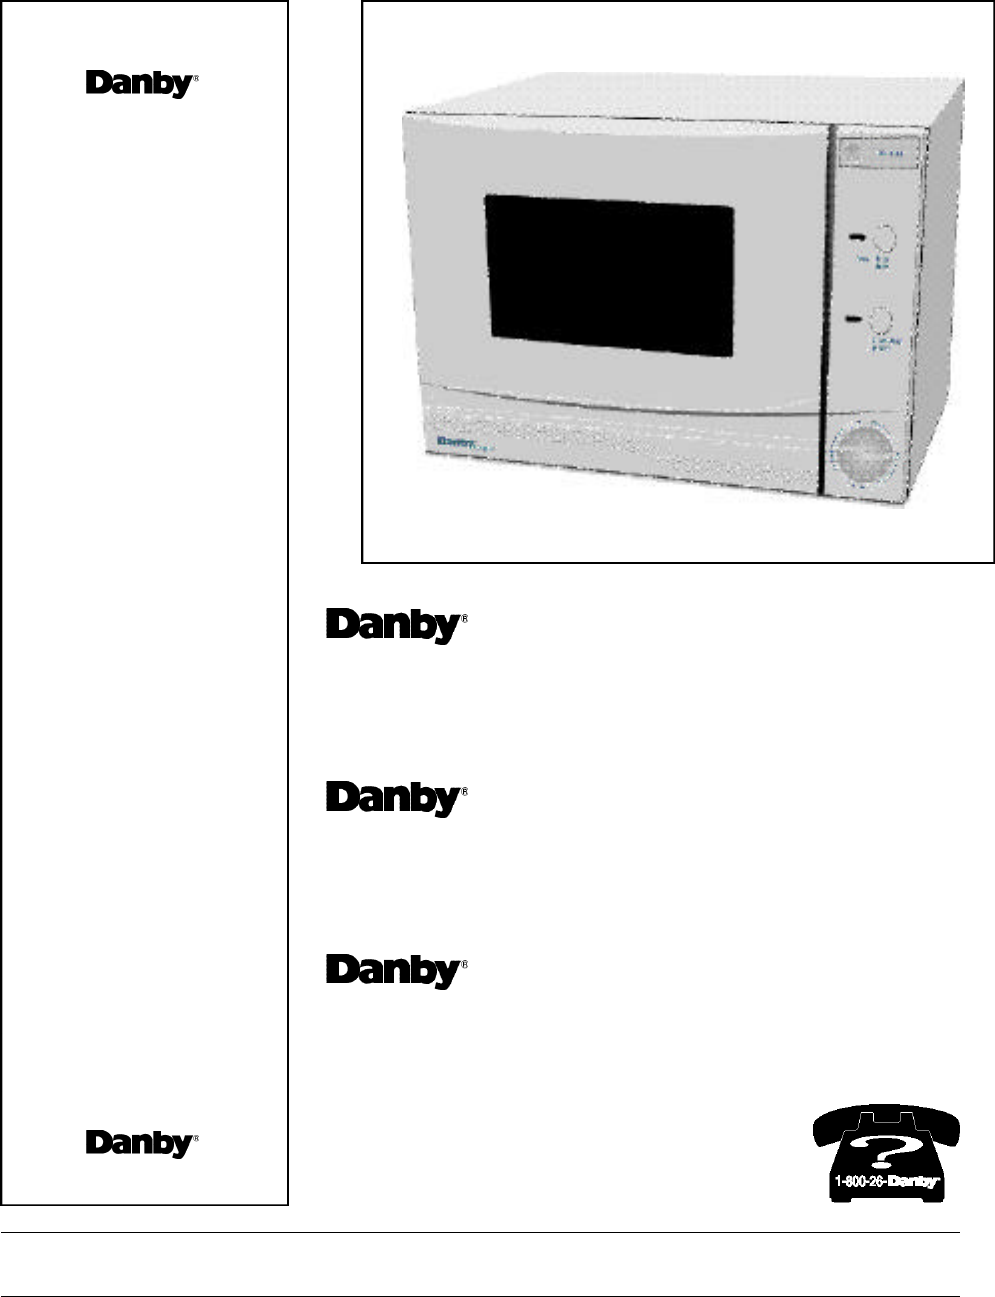 danby dishwasher ddw396w user guide manualsonline com rh kitchen manualsonline com Danby DDW611WLED Countertop Dishwasher Danby Countertop Dishwasher Parts